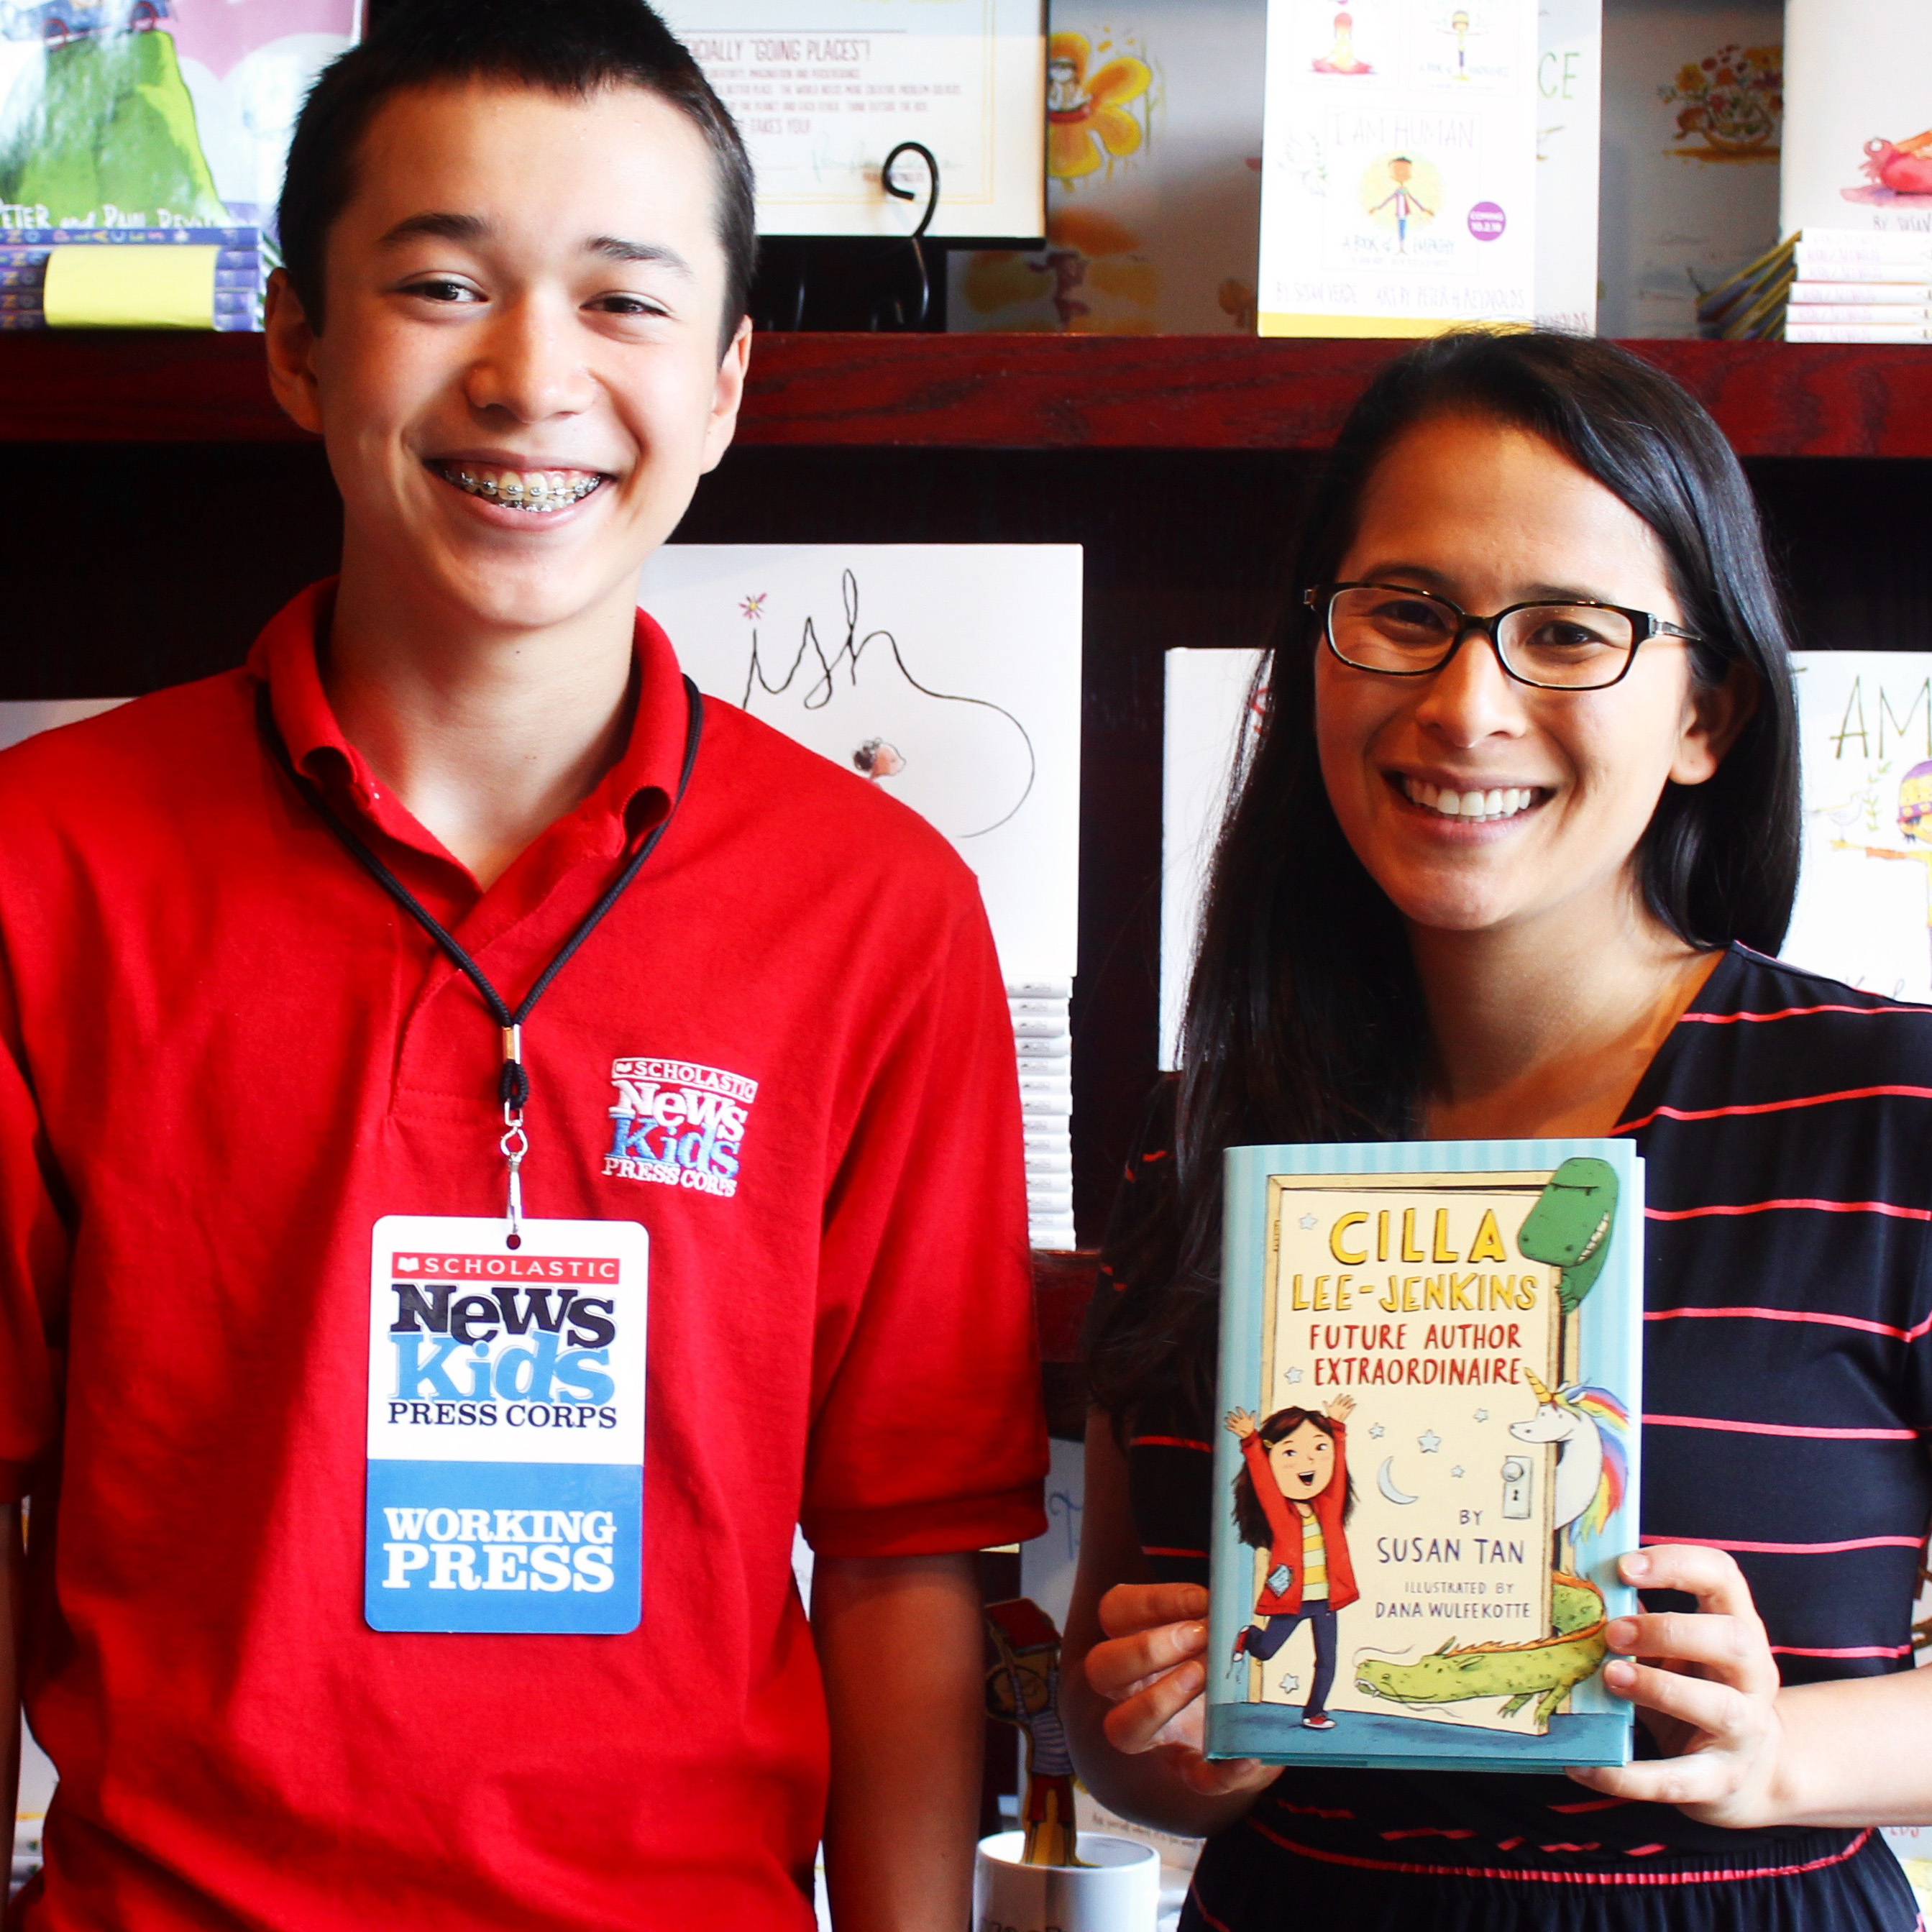 Maxwell Surprenant with author Susan Tan